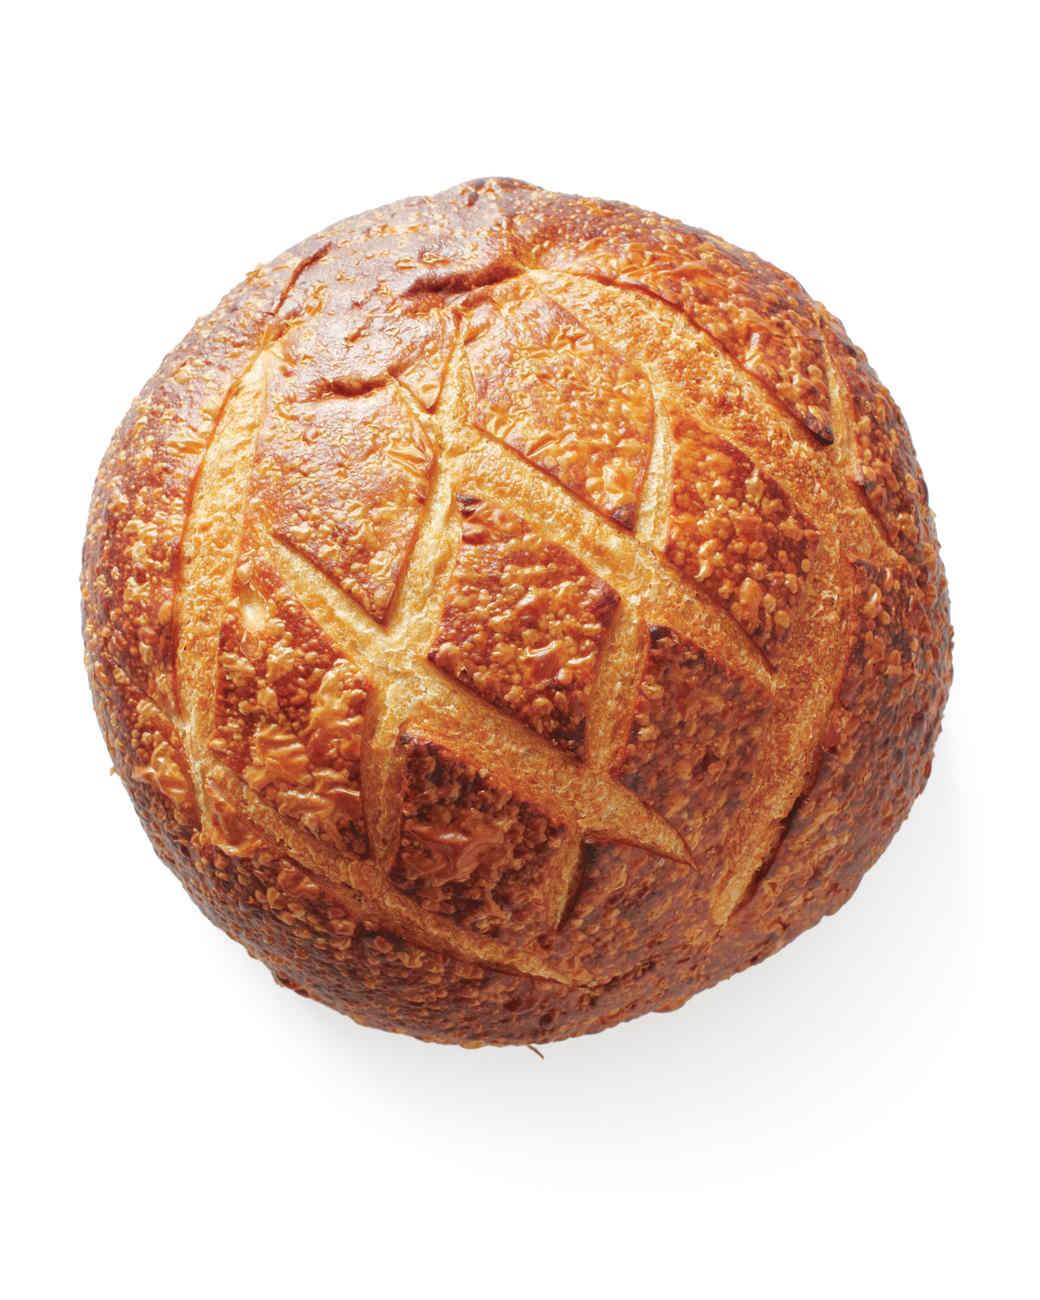 sourdough-bread-med108679.jpg